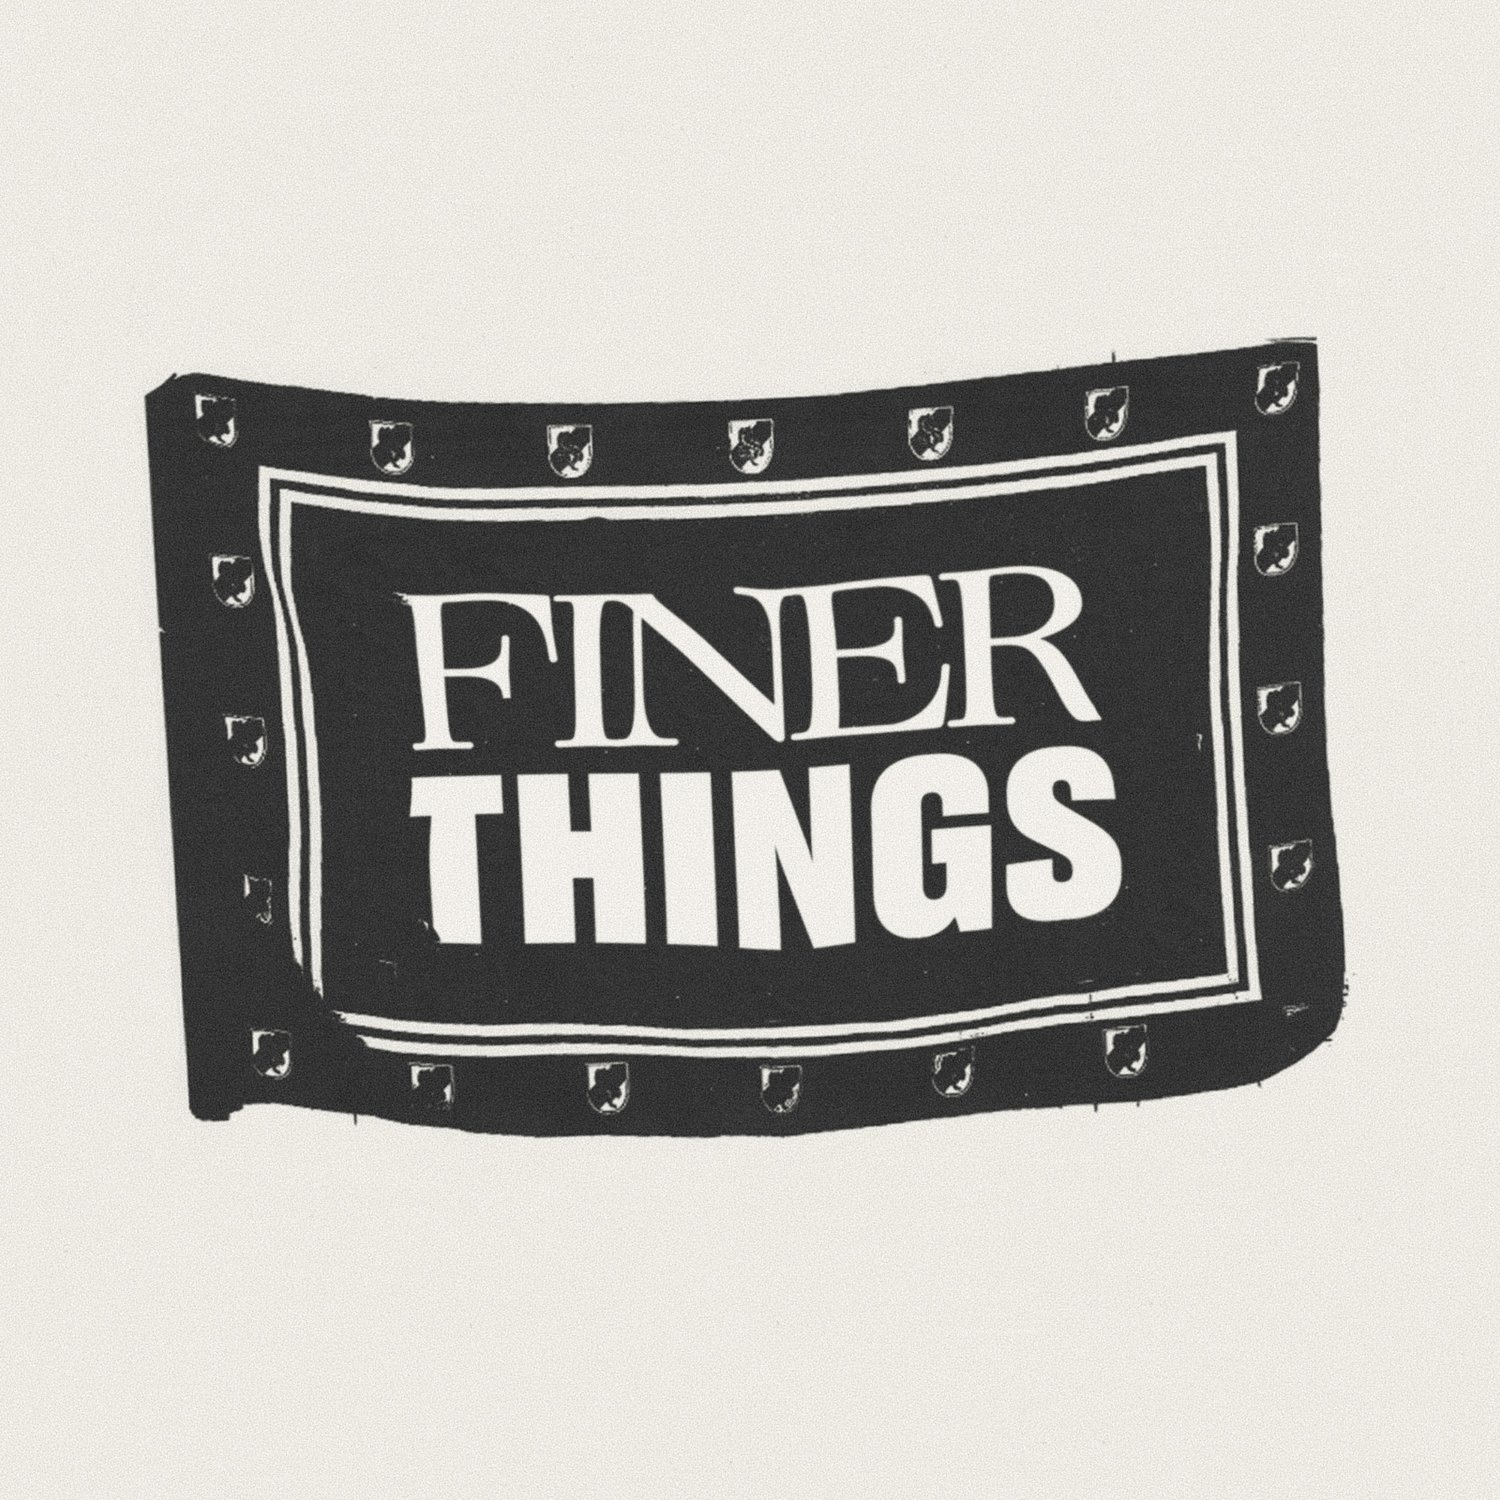 Finer Things